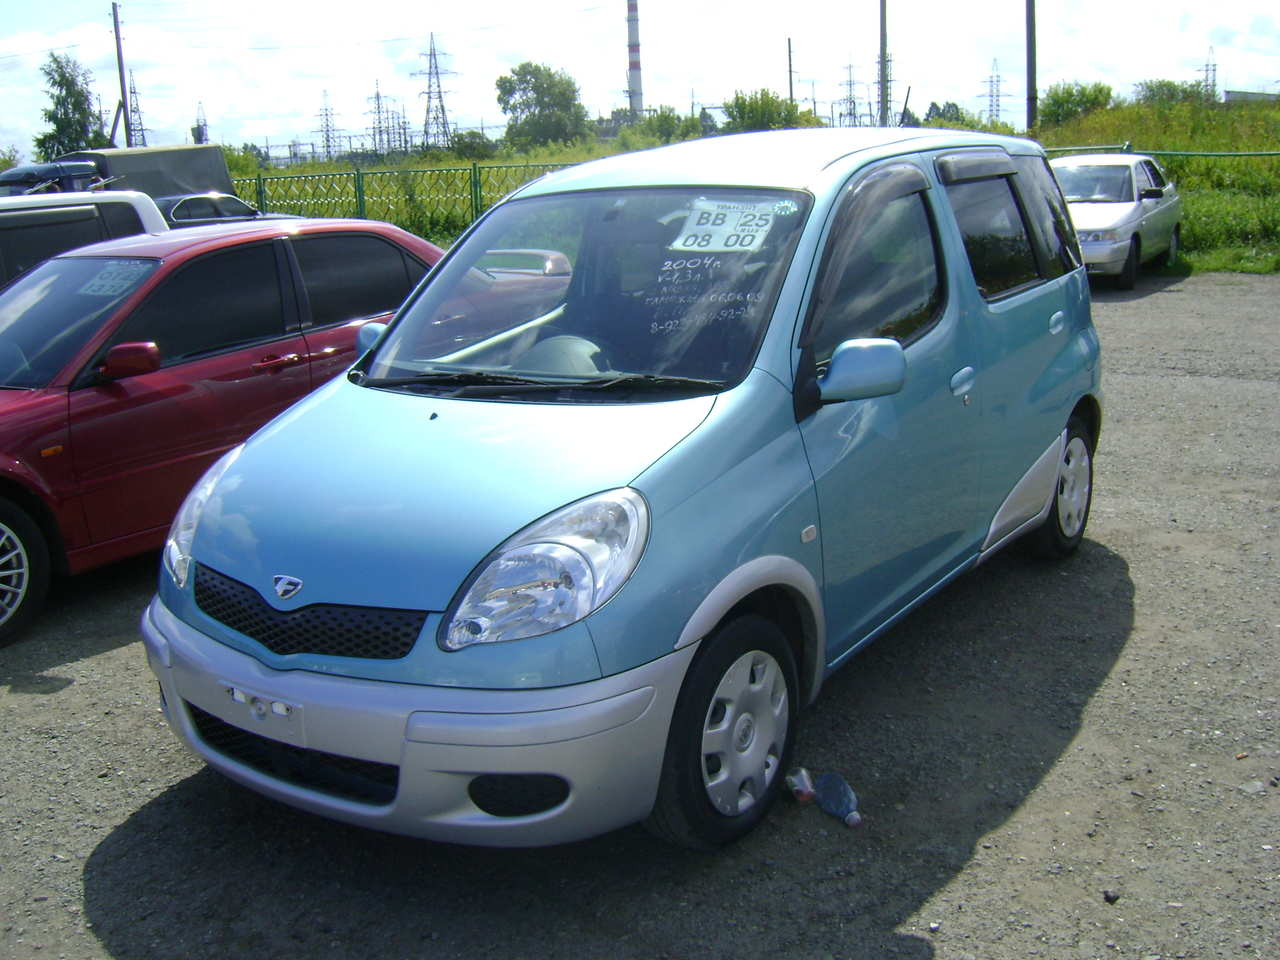 Toyota Funcargo 2003 photo - 5